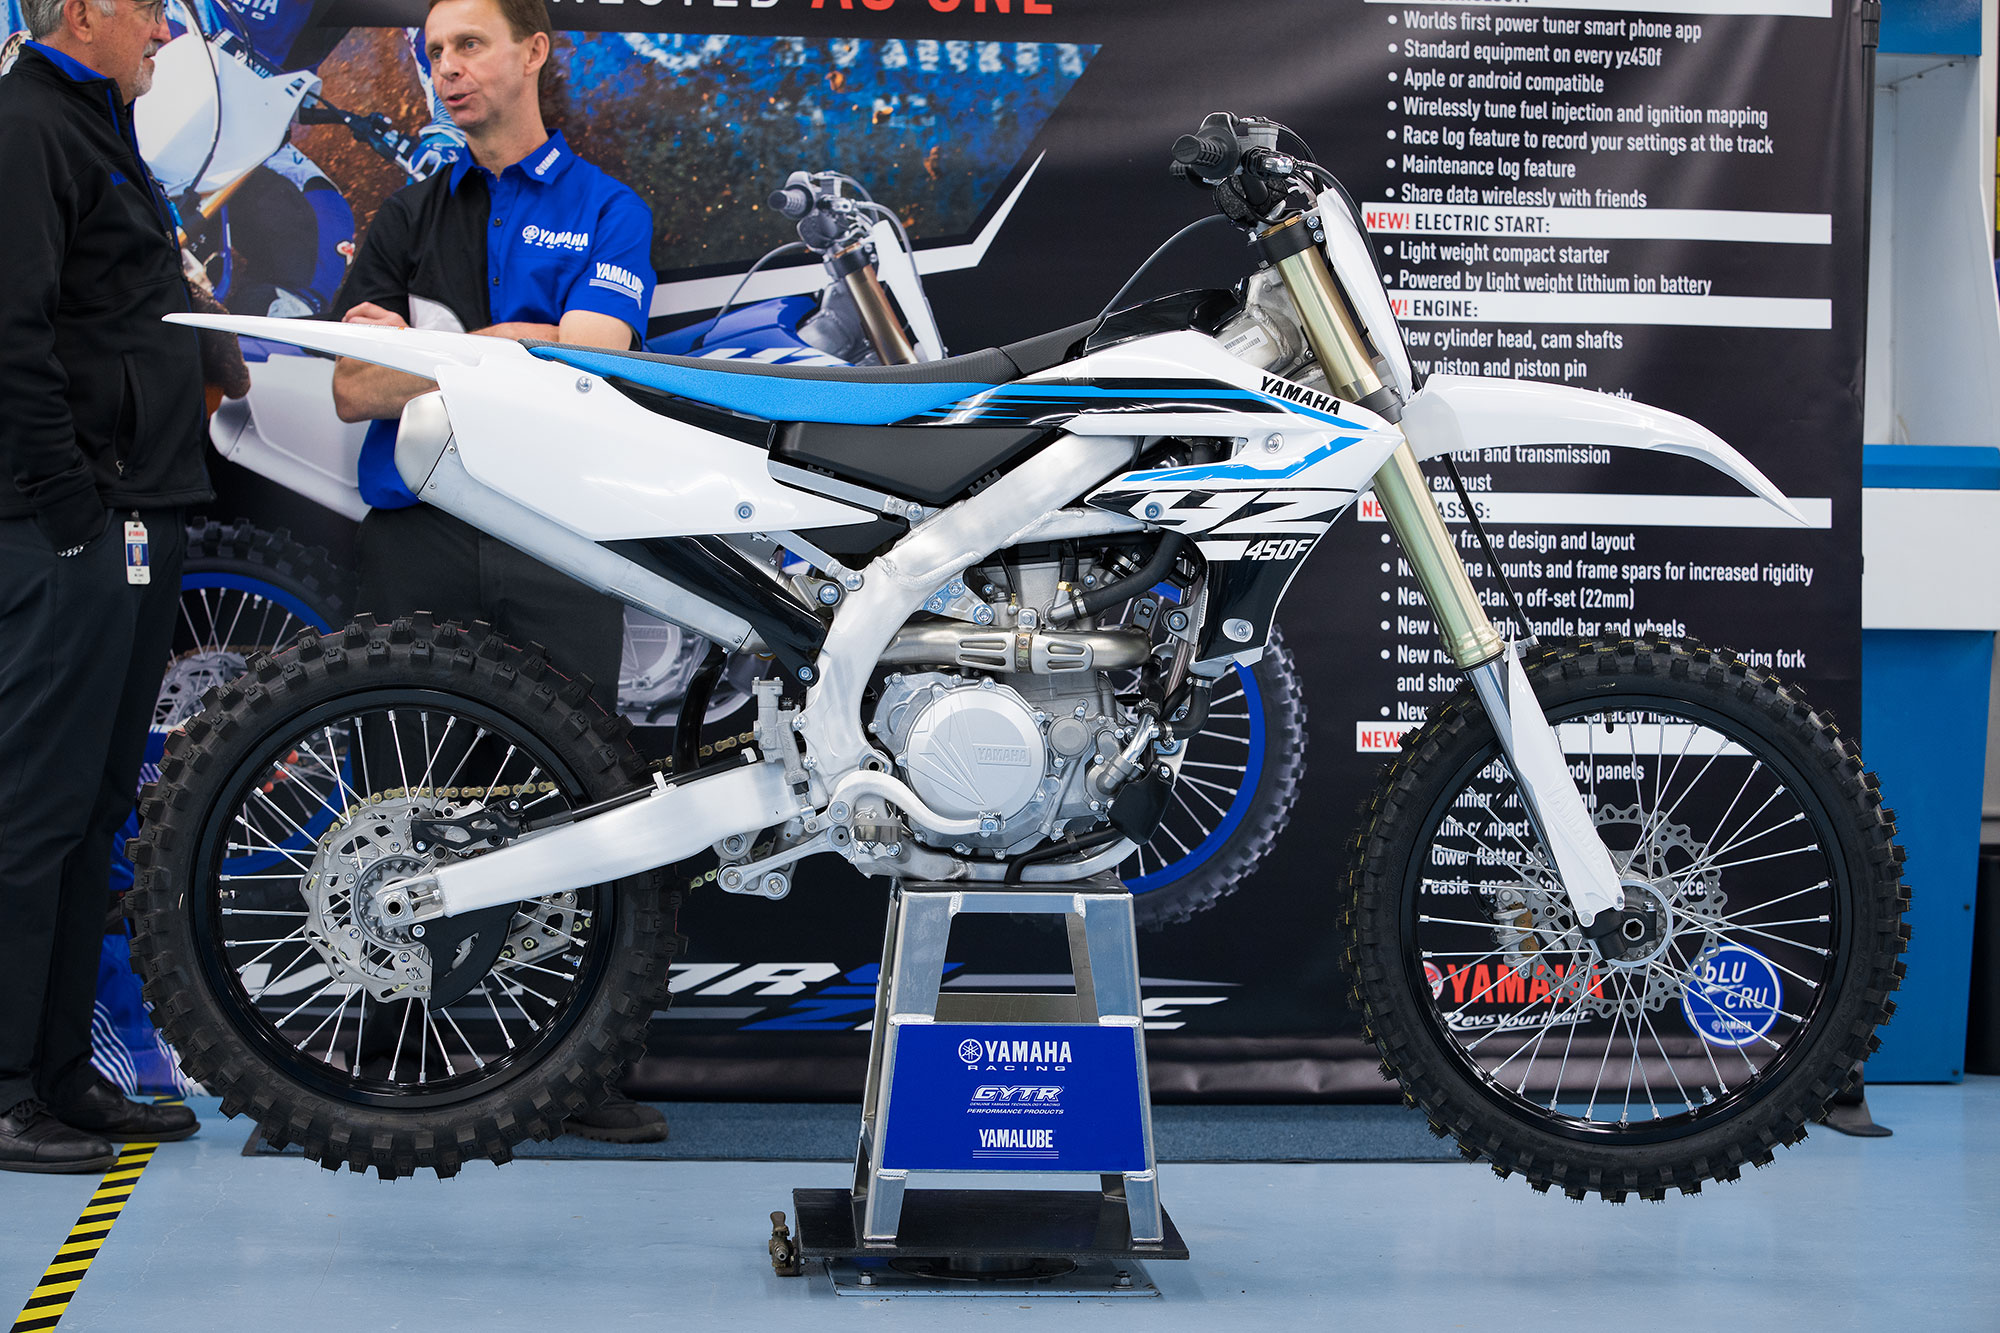 Yamaha also offers the 2018 YZ450F in Team Yamaha Blue/White.